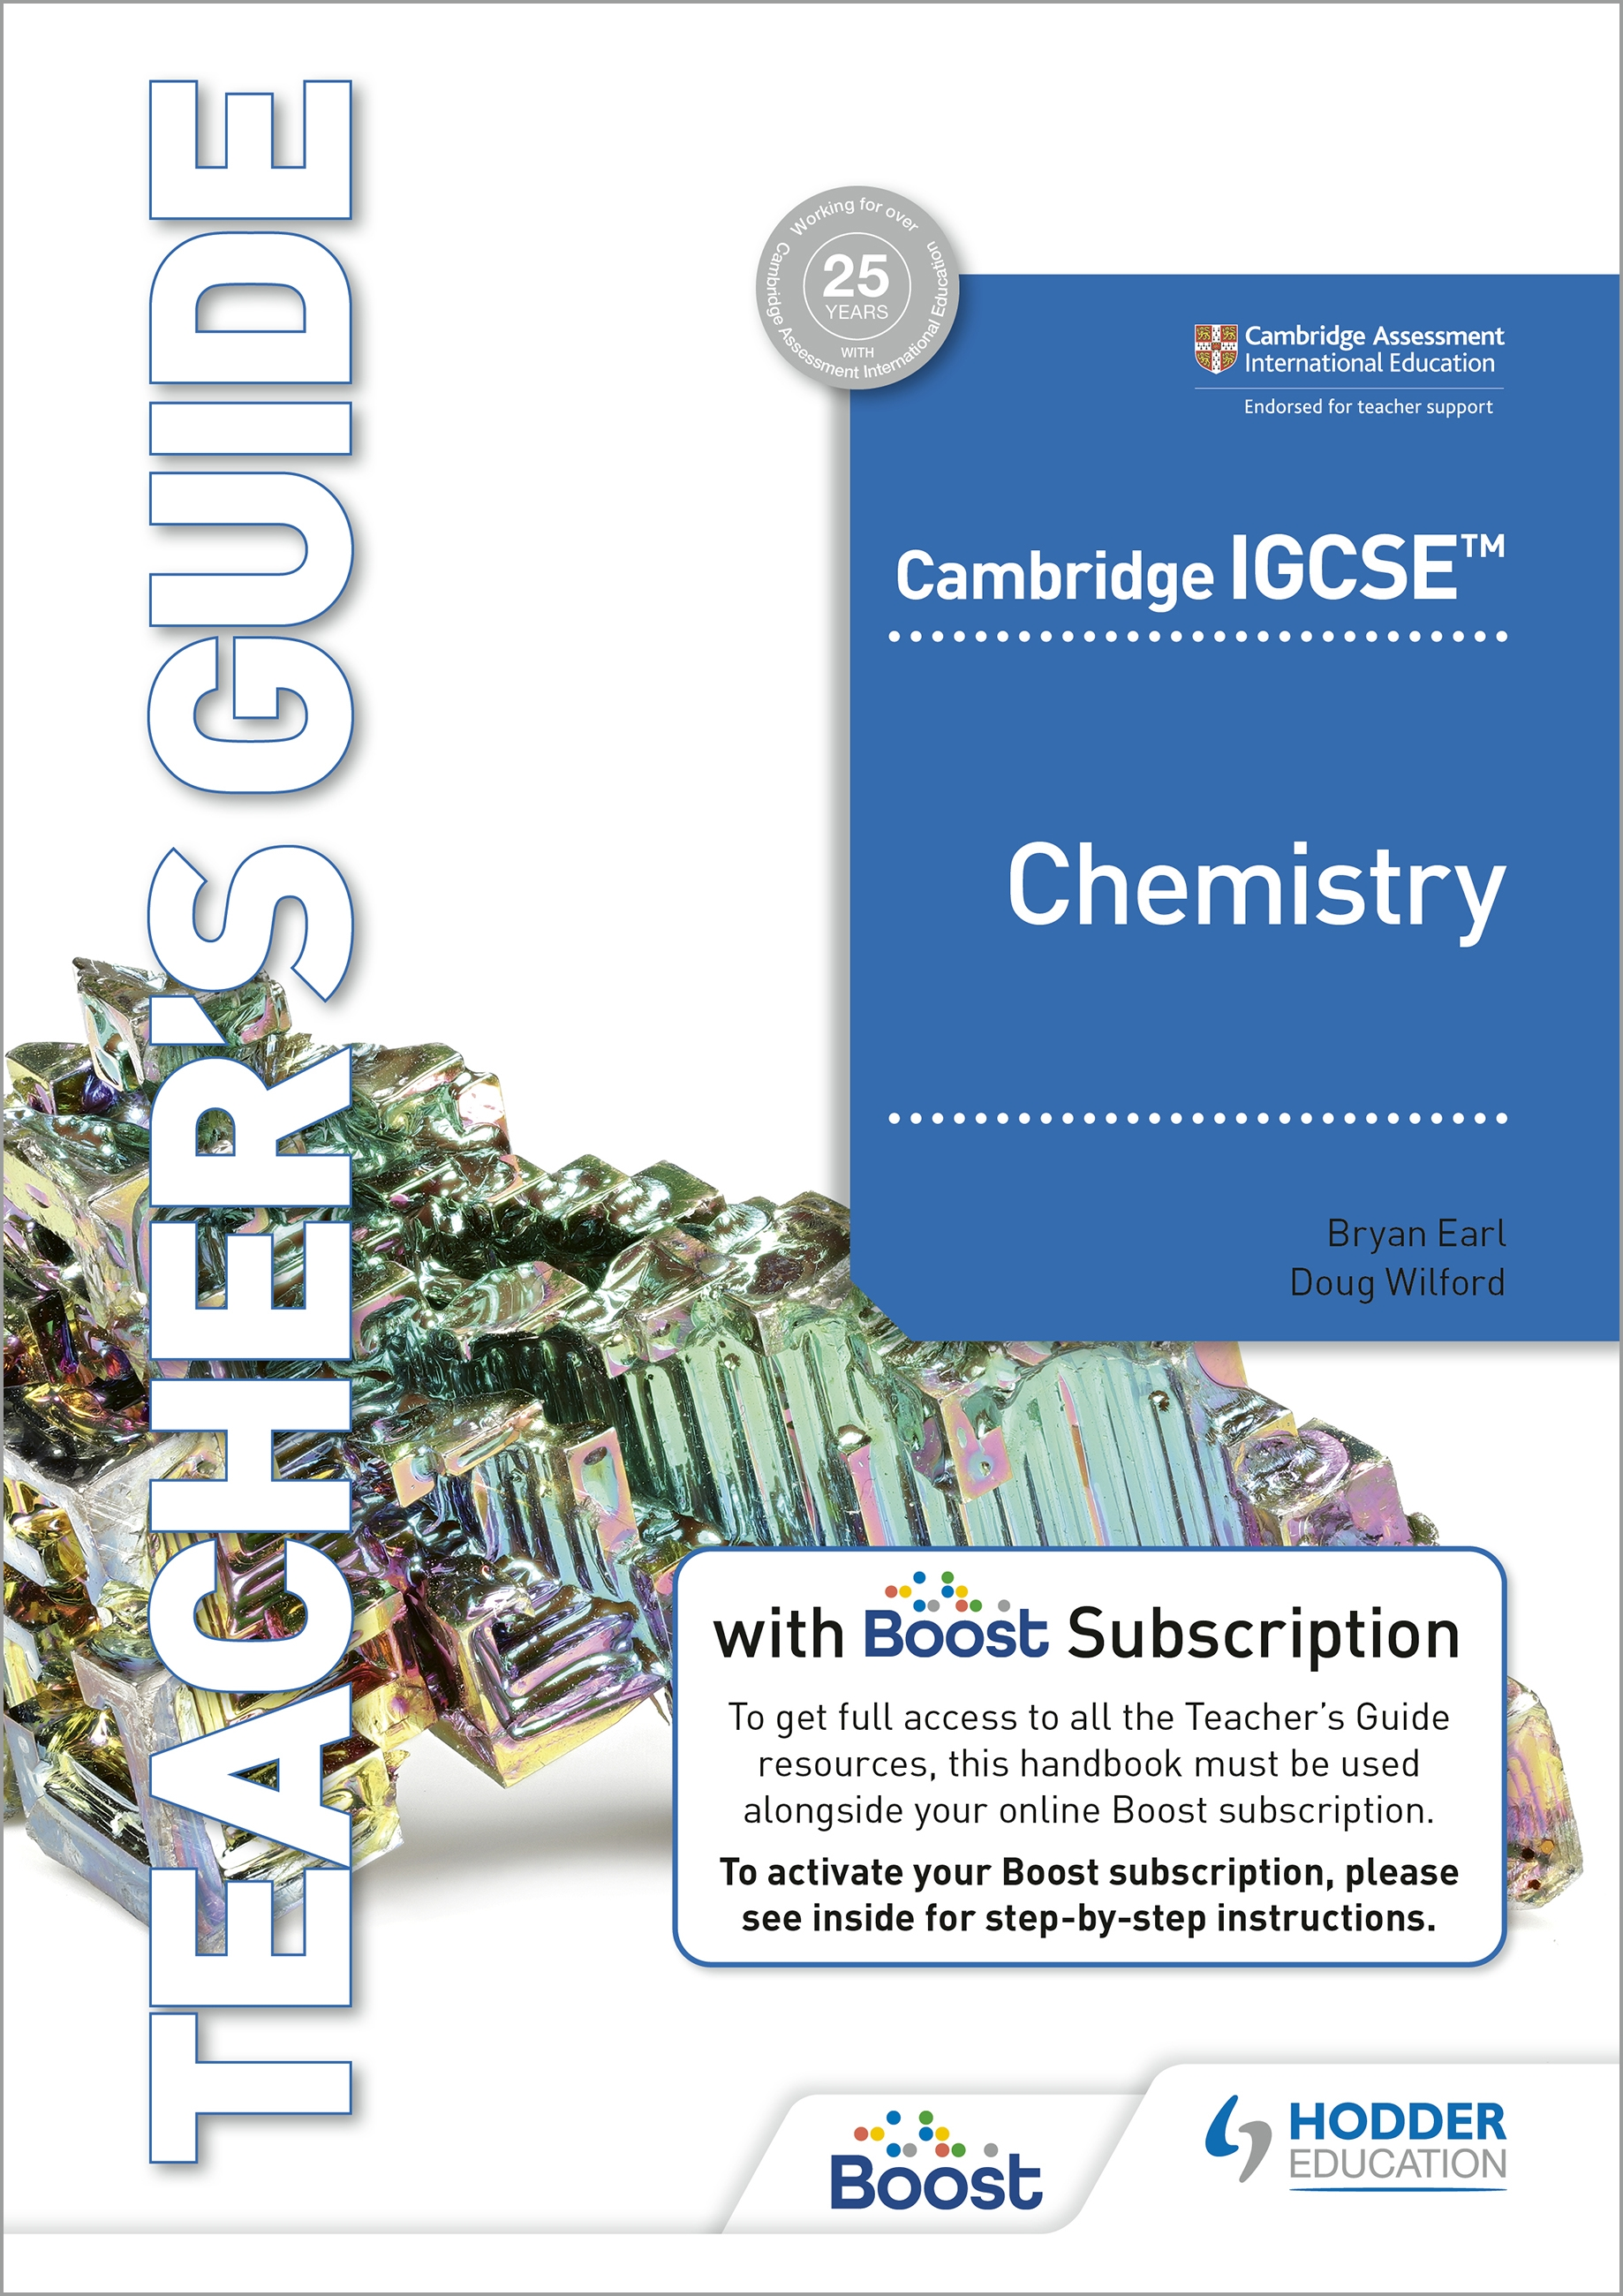 Cambridge IGCSE (TM) Chemistry Teacher's Guide with Boost Subscription Booklet